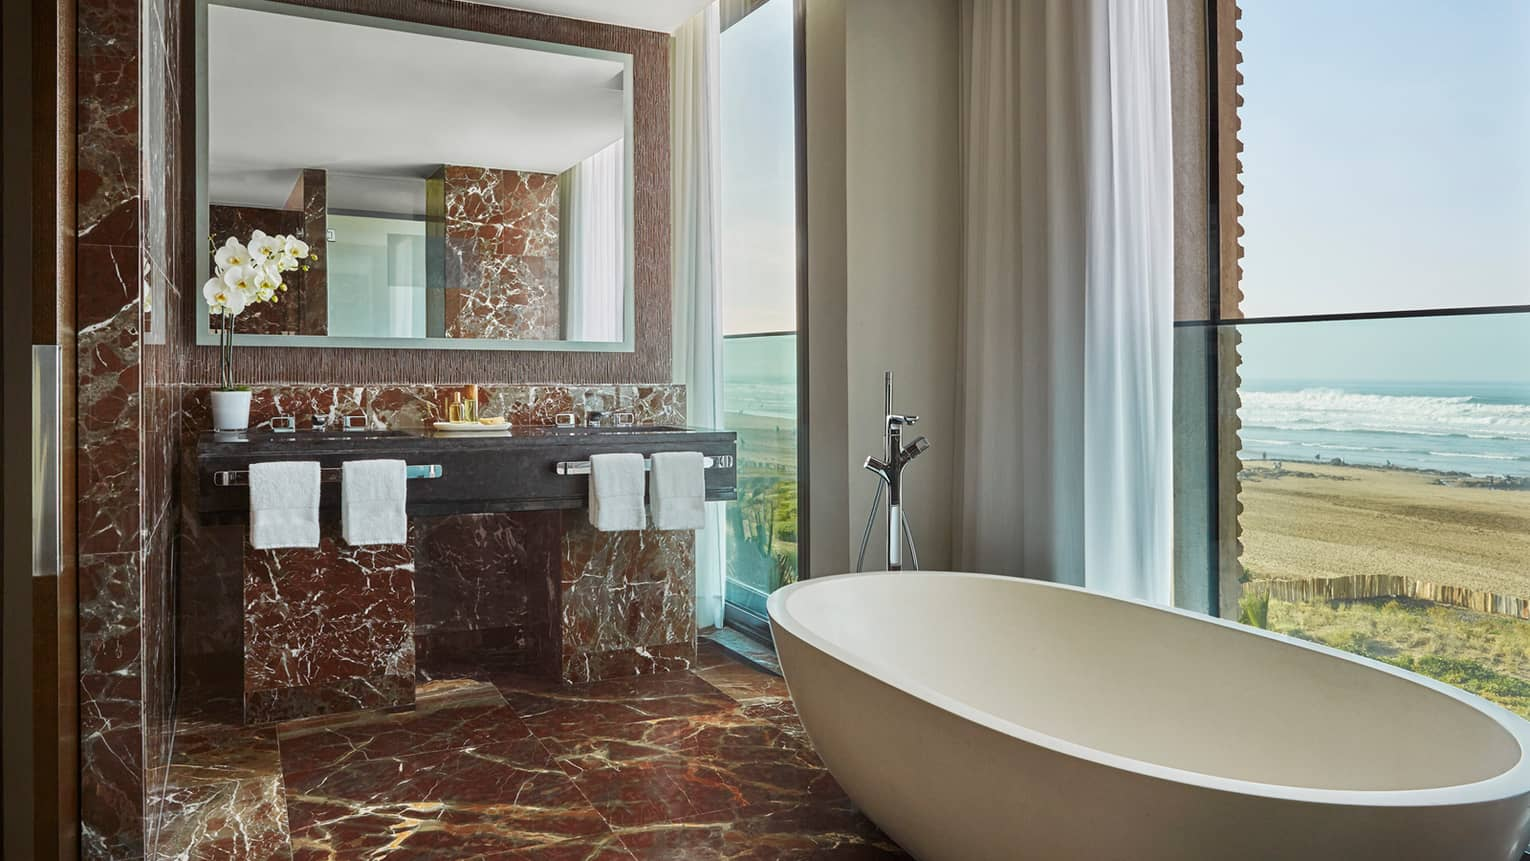 Signature Suite bathroom with deep soaker tub in front of window with ocean view, brown marble floor, wall